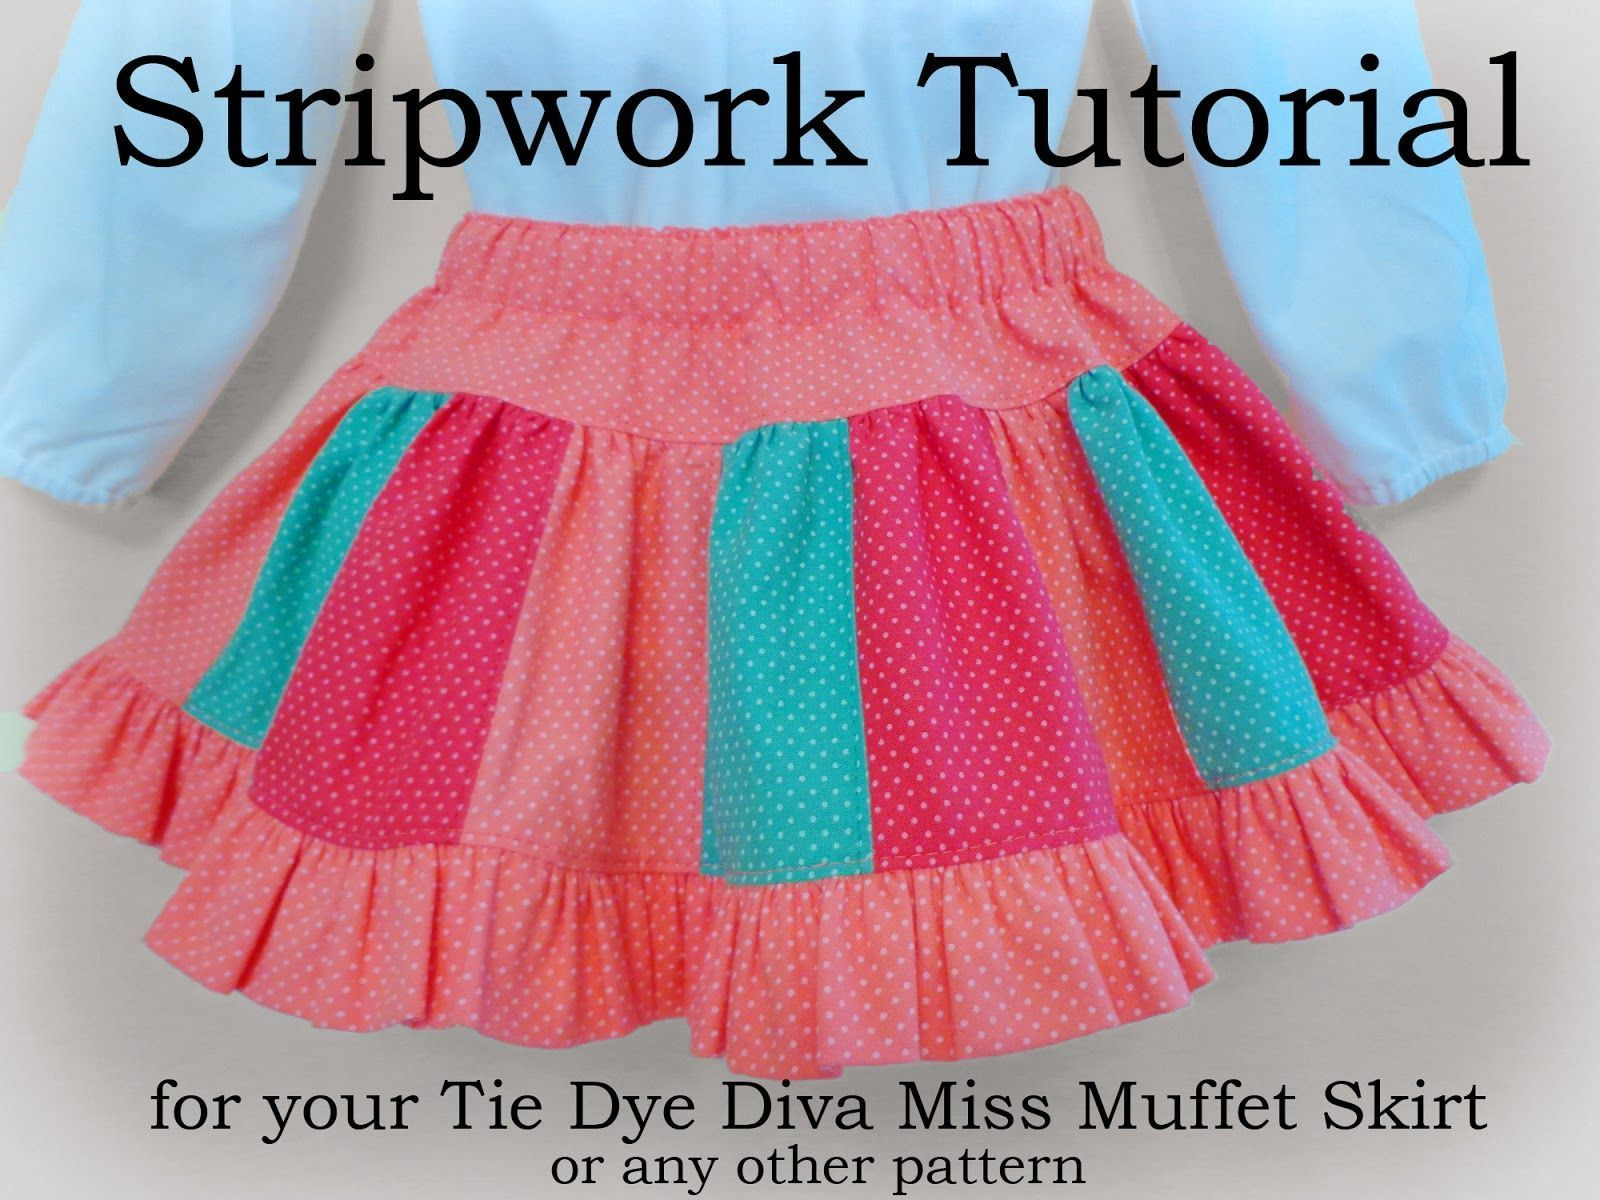 Stripwork Tutorial for the Tie Dye Diva Twirl Skirt - or ANY pattern #twirlskirt A big TDD welcome to Rachel of Missy Mae's Closet! Not only is she part of Team Tie Dye Diva as our marketing assistant, she is wonderfully creative and talented we are sharing some of that awesomeness with you today! Rachel's going to show you how to take the Miss Muffet pattern and make it … Continue reading Stripwork Tutorial for the Tie Dye Diva Twirl Skirt – or ANY pattern! #twirlskirt Stripwork Tutoria #twirlskirt